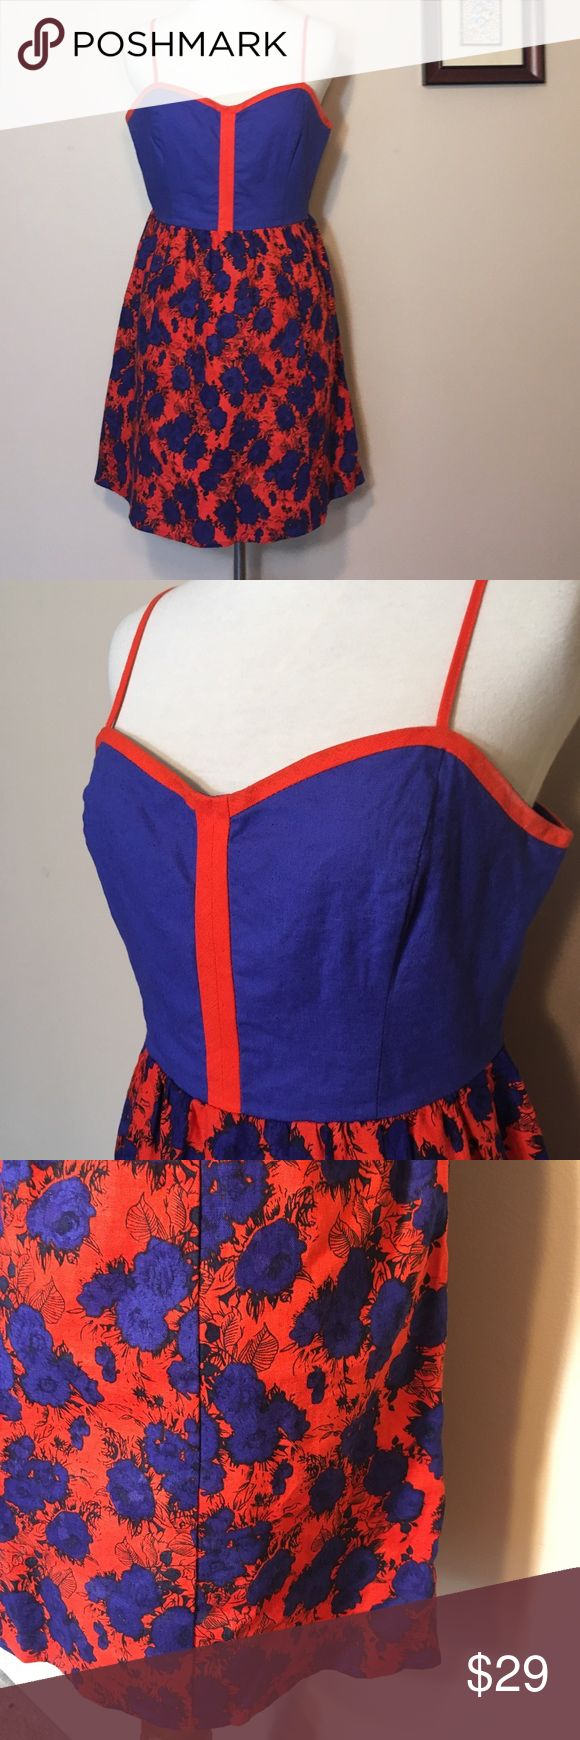 Urban Outfitters Cope Red Blue Floral Sundress M Gorgeous colorblock dress with a floral skirt. Has a snapped open back and spaghetti straps. The red is really vibrant and almost like an orange. Nice material and well made! Size medium. Urban Outfitters Dresses Mini